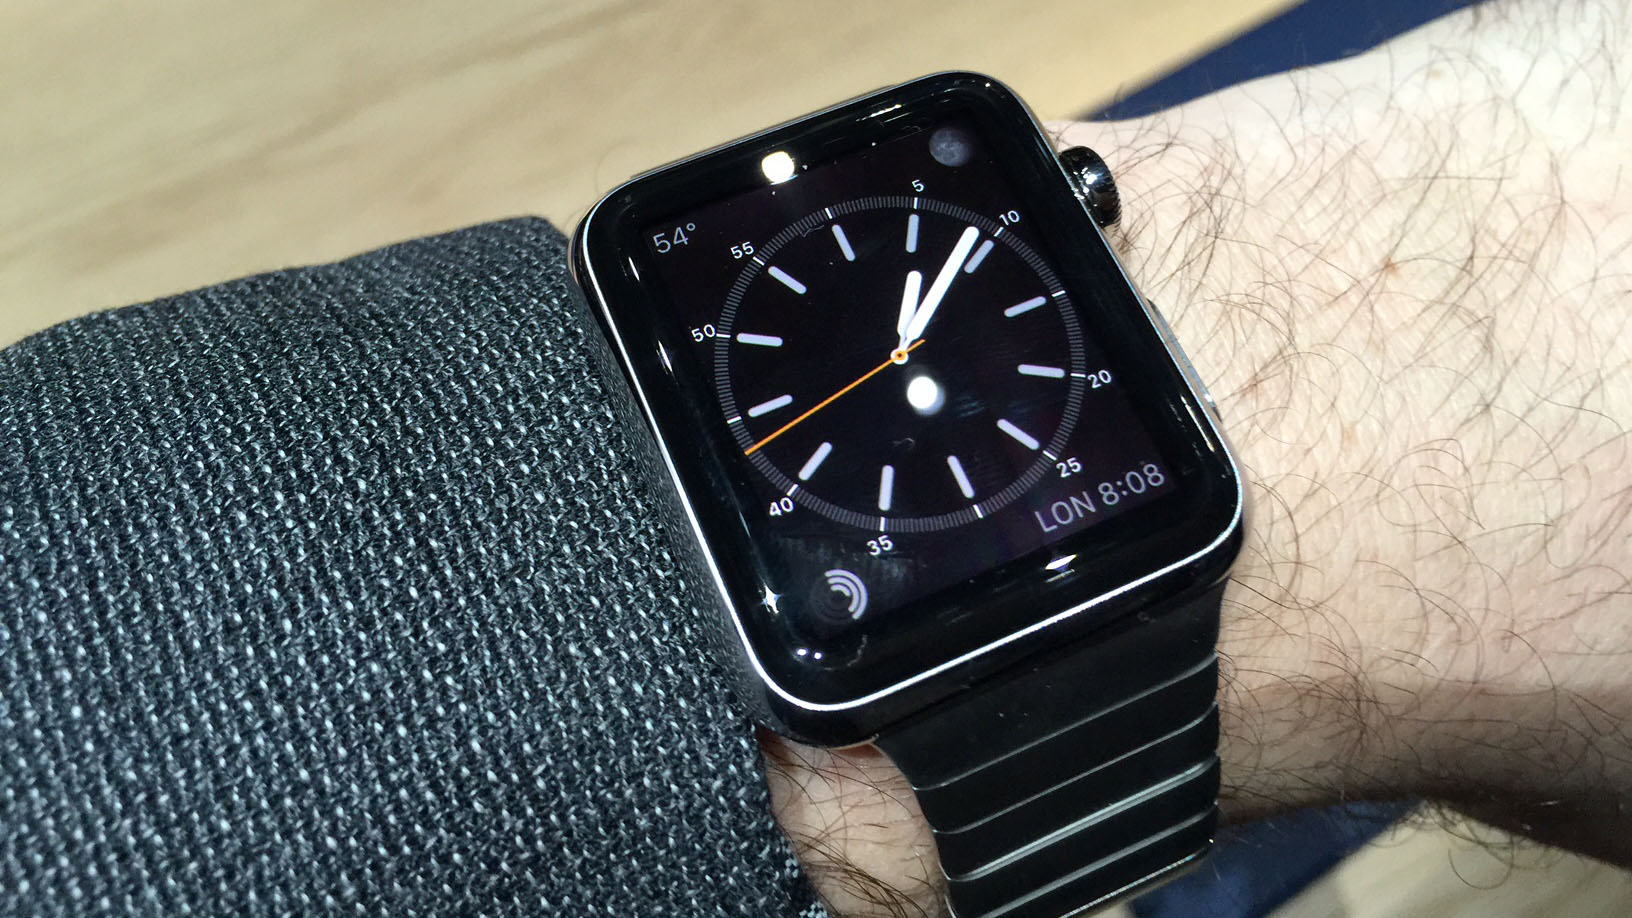 A Canadian take on the Apple Watch